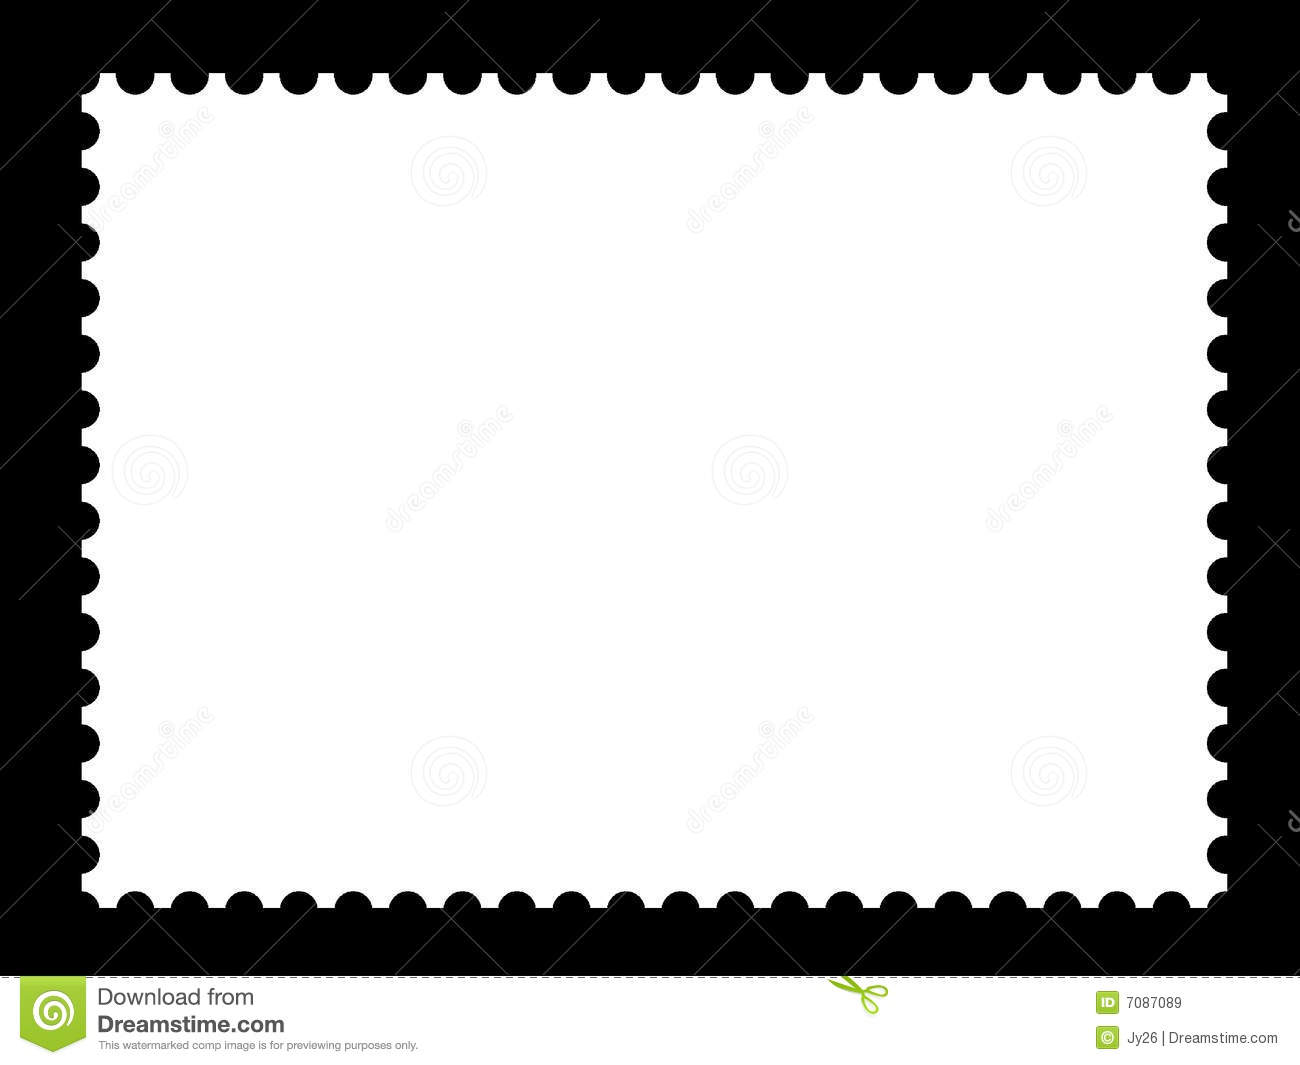 Blank Stamp Templates Royalty Free Stock Images - Image: 7087089